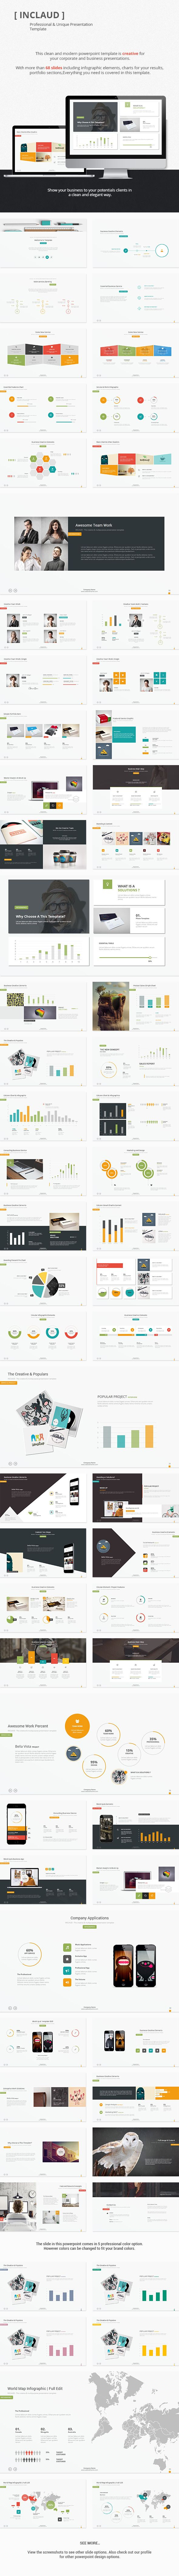 Claude - Clean & Professional Presentation Template #presentation #presentationtemplate Download: http://graphicriver.net/item/claude-clean-professional-template/10137105?ref=ksioks